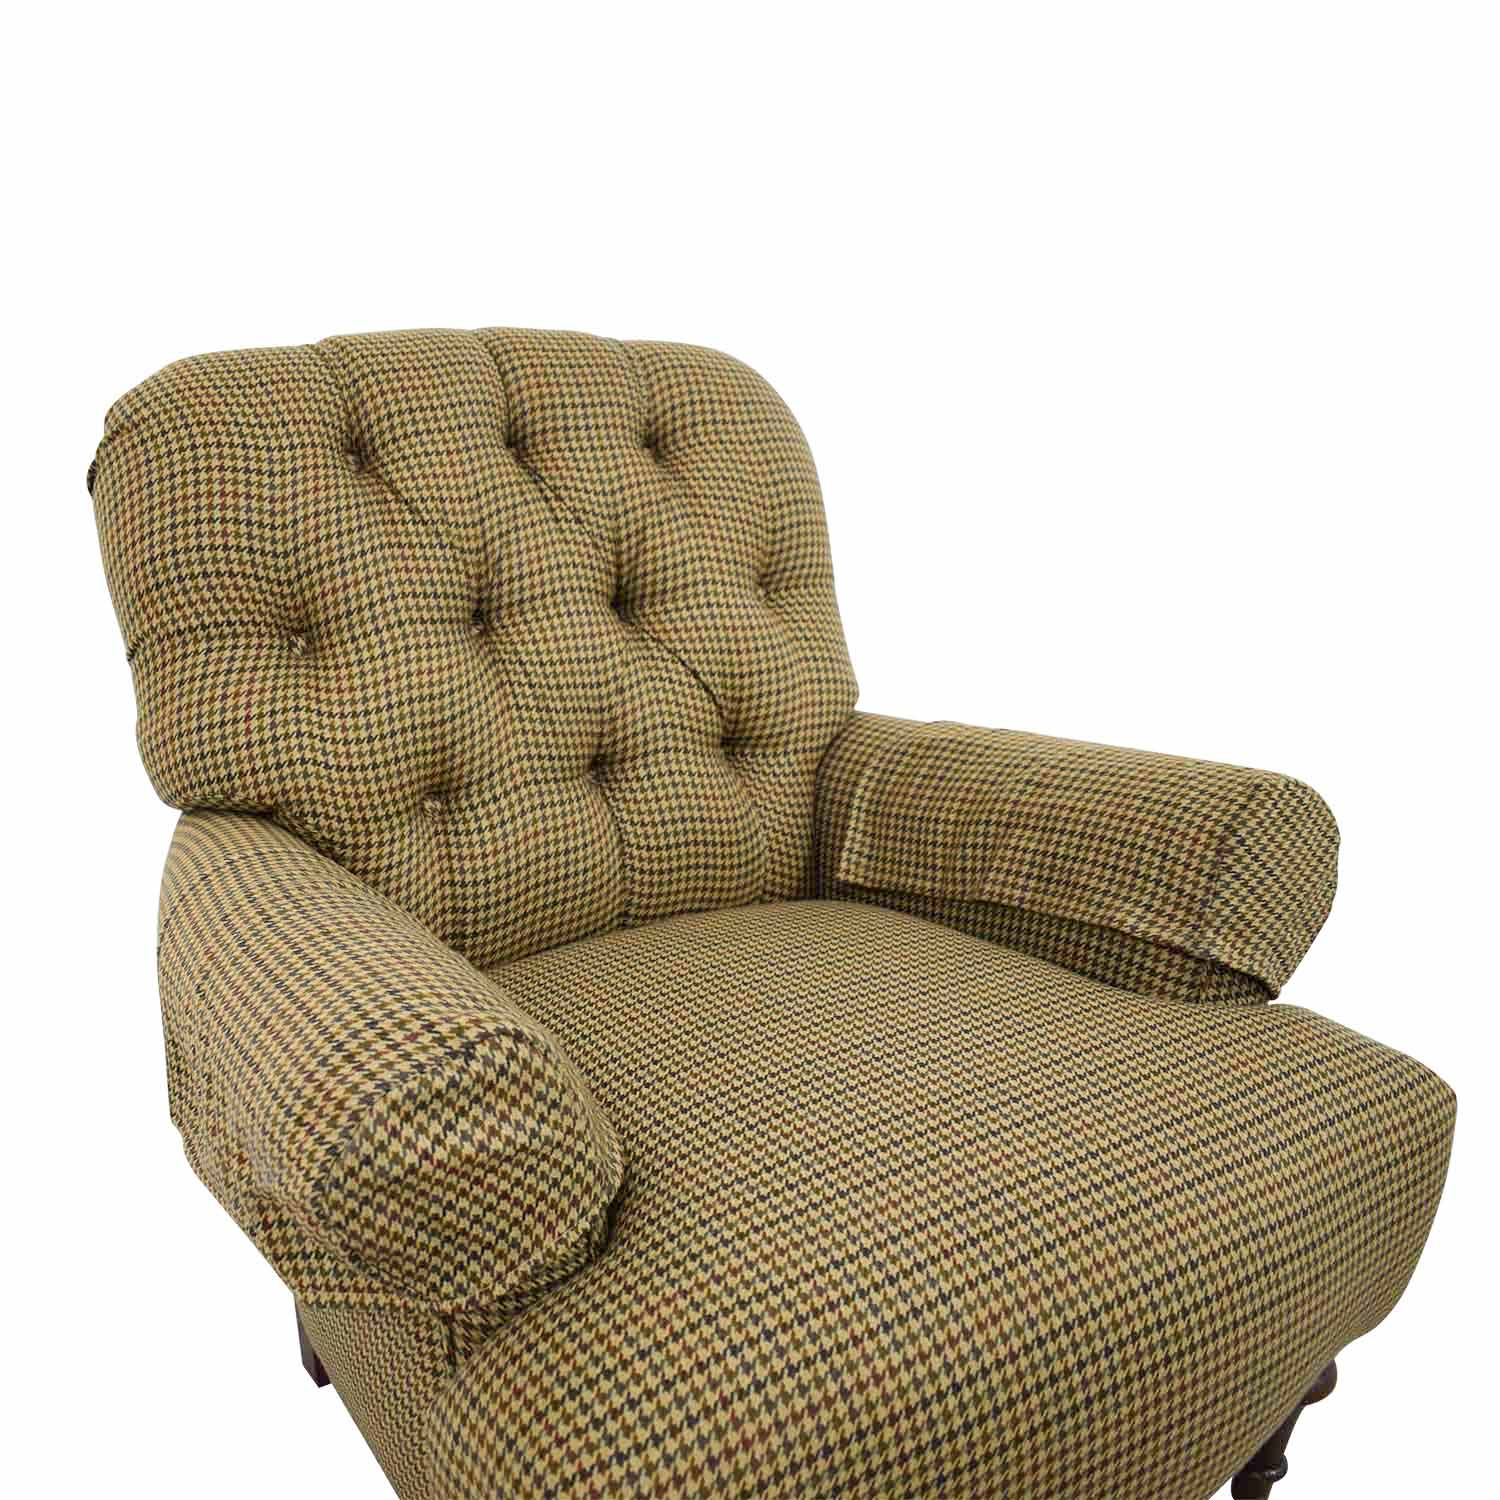 Designer Houndstooth Tufted Accent Chair / Accent Chairs